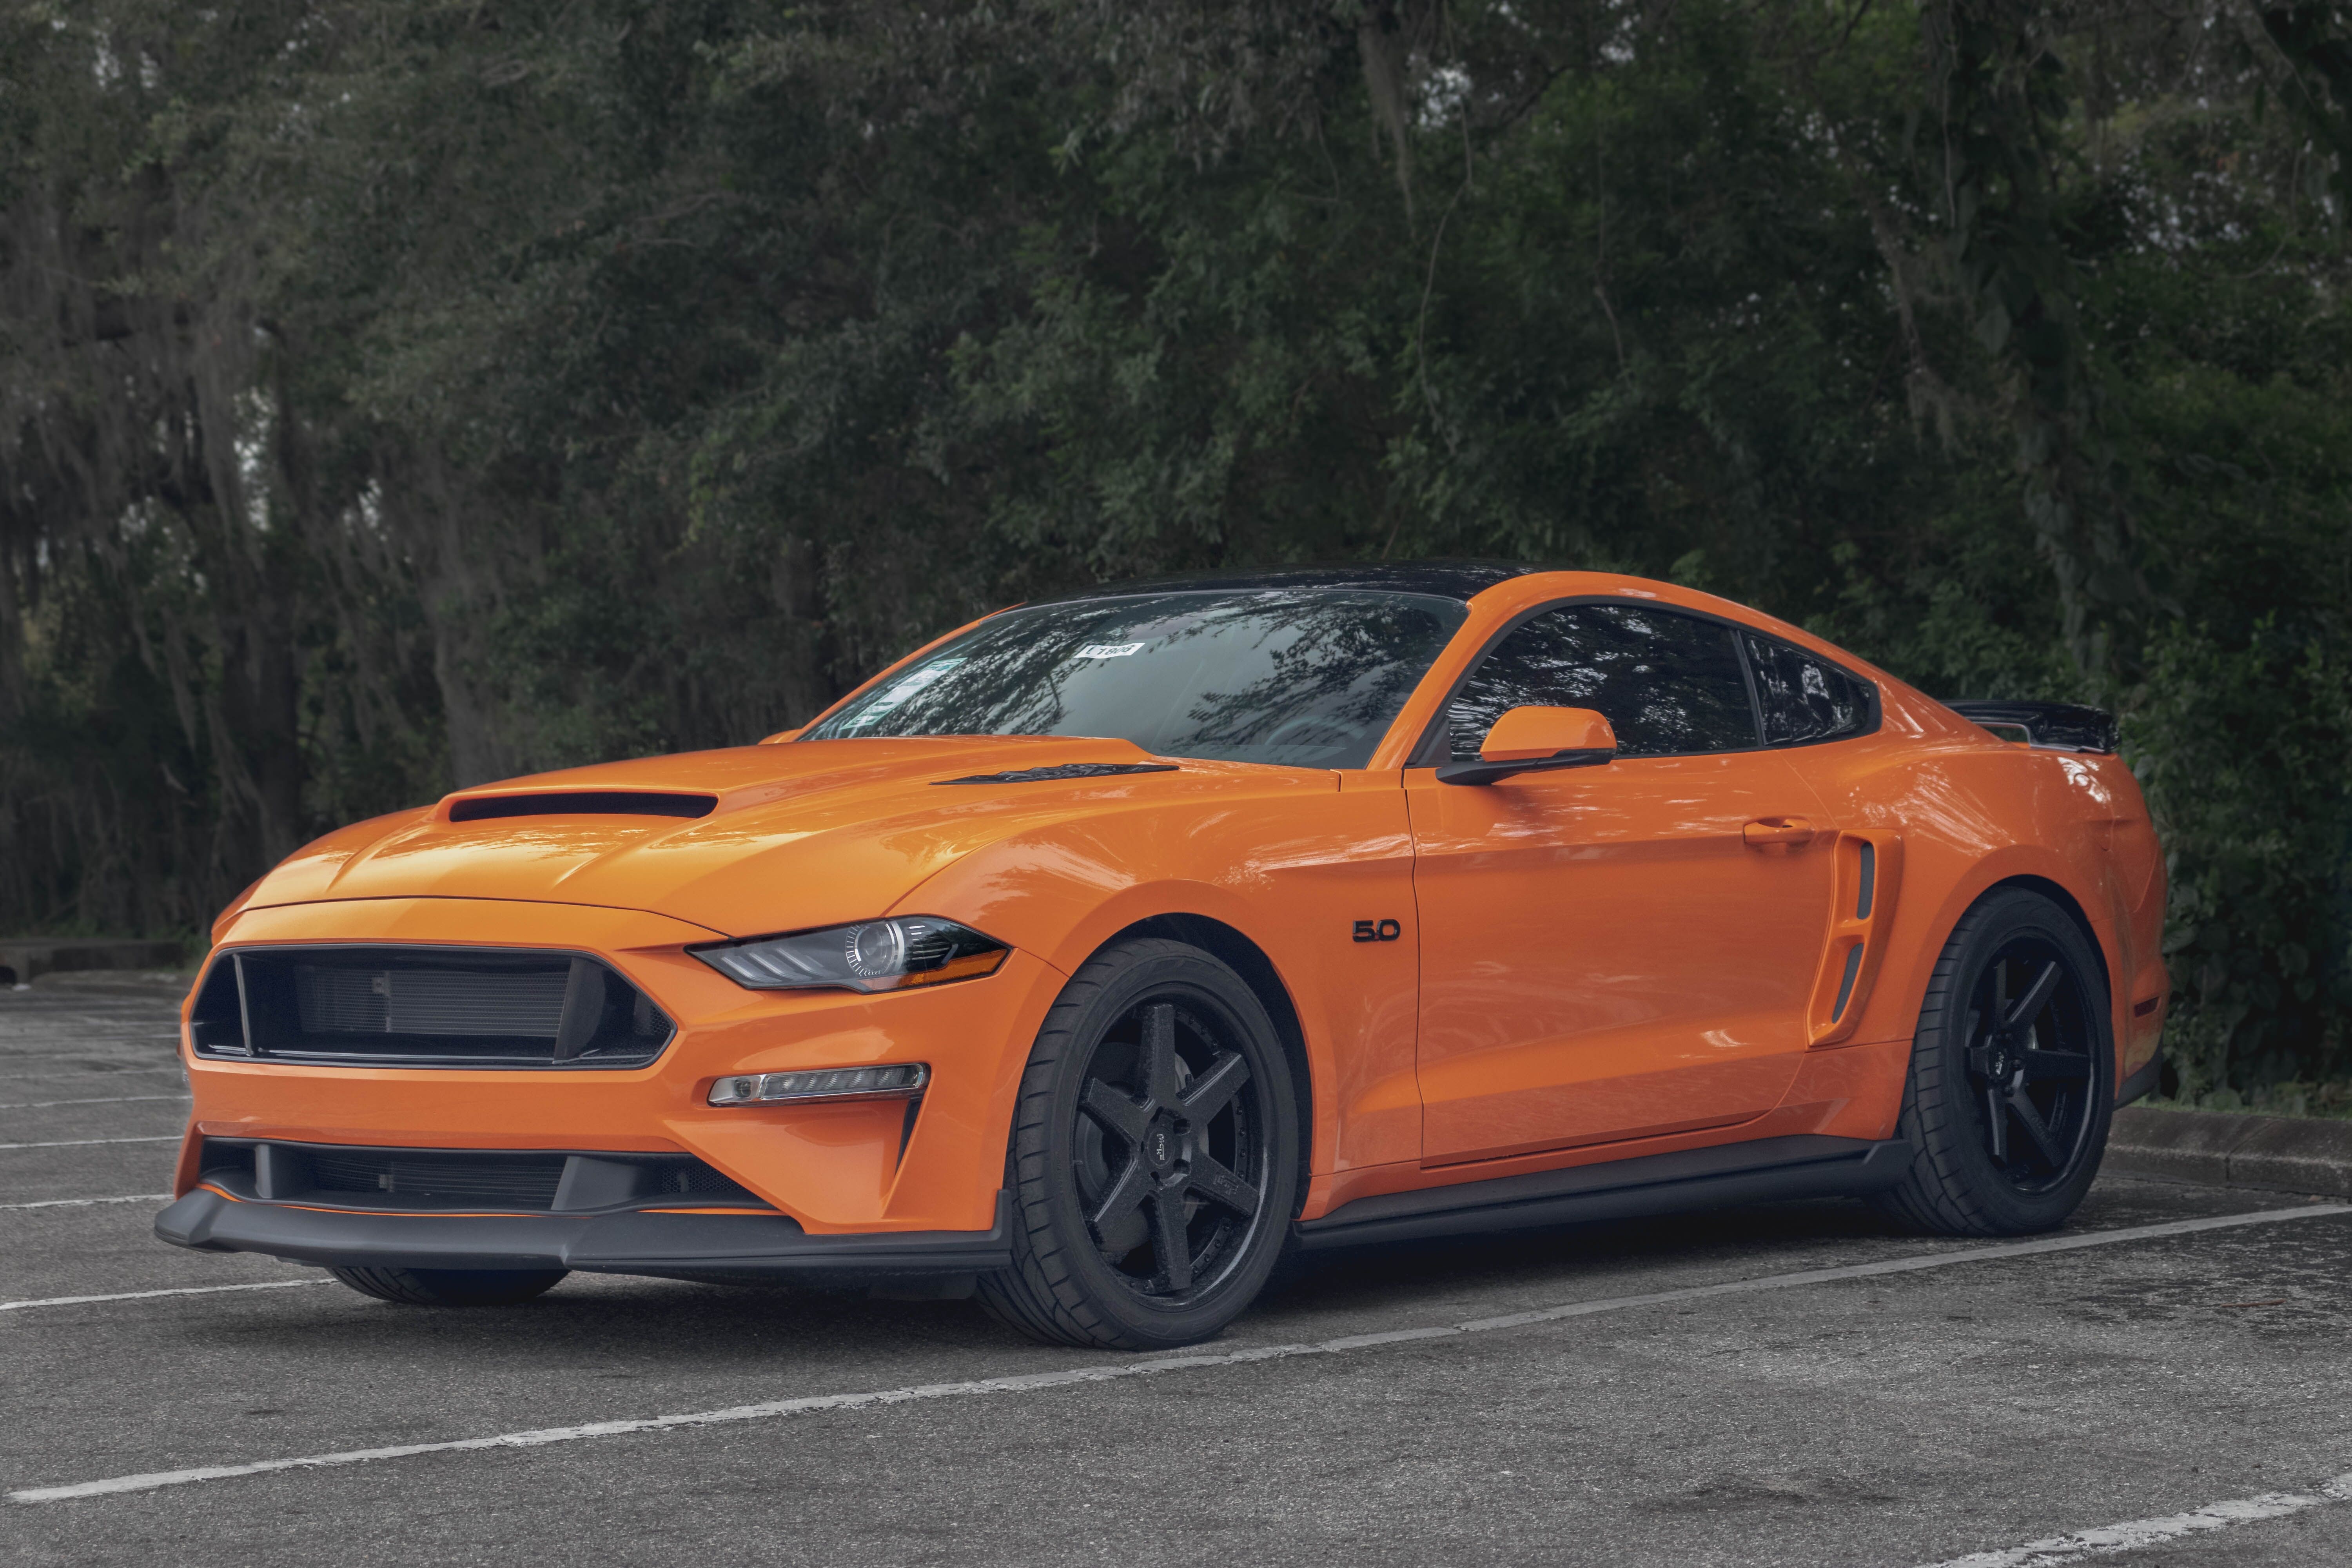 side view of an orange Ford Mustang